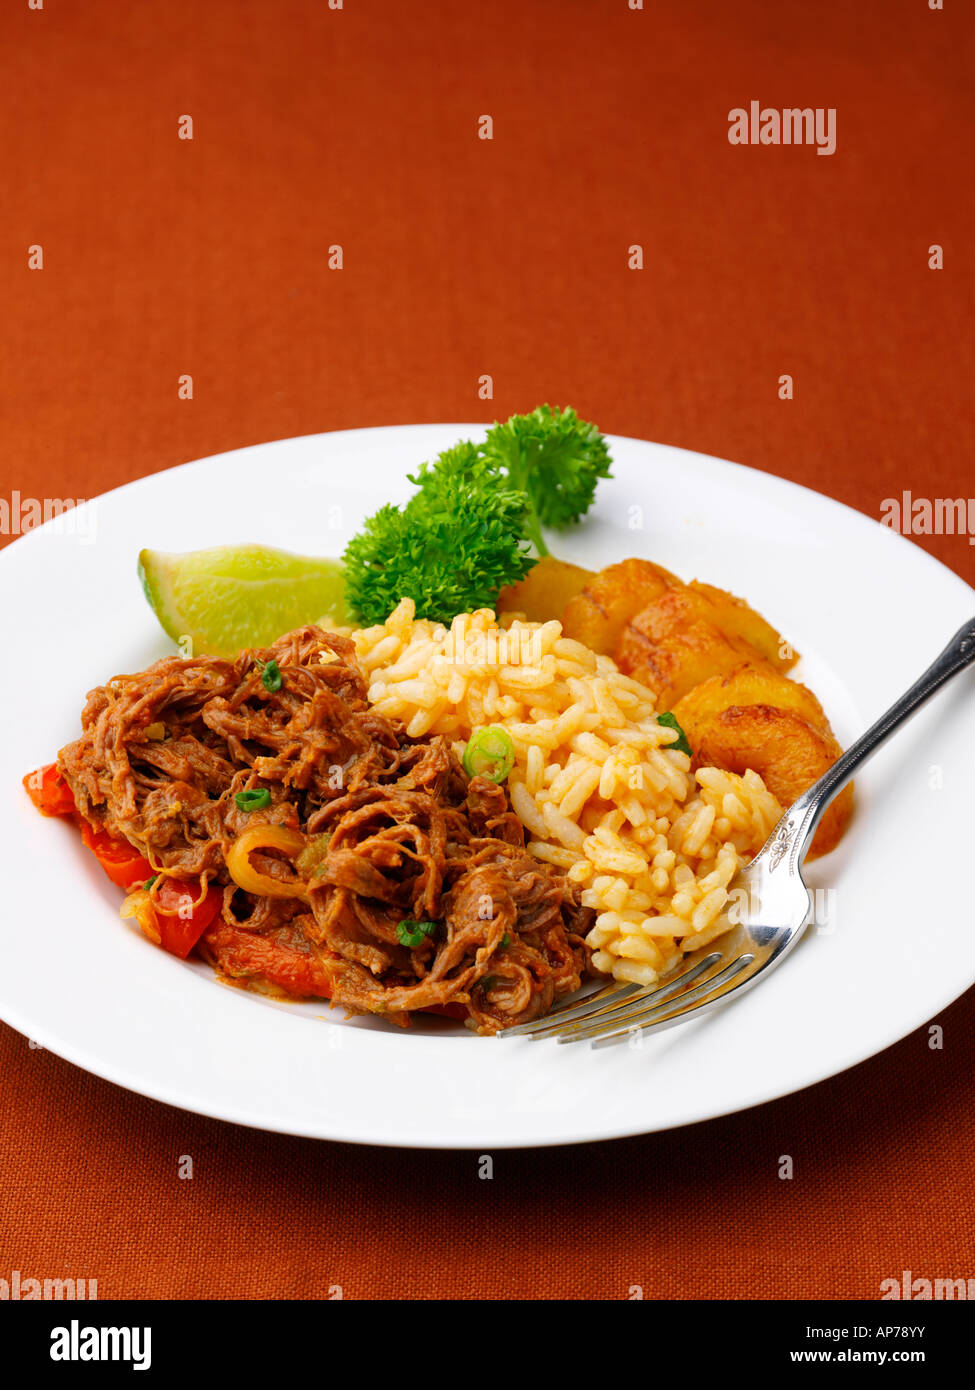 Shredded Flank Steak Ropa Vieja Cuban Food - Stock Image